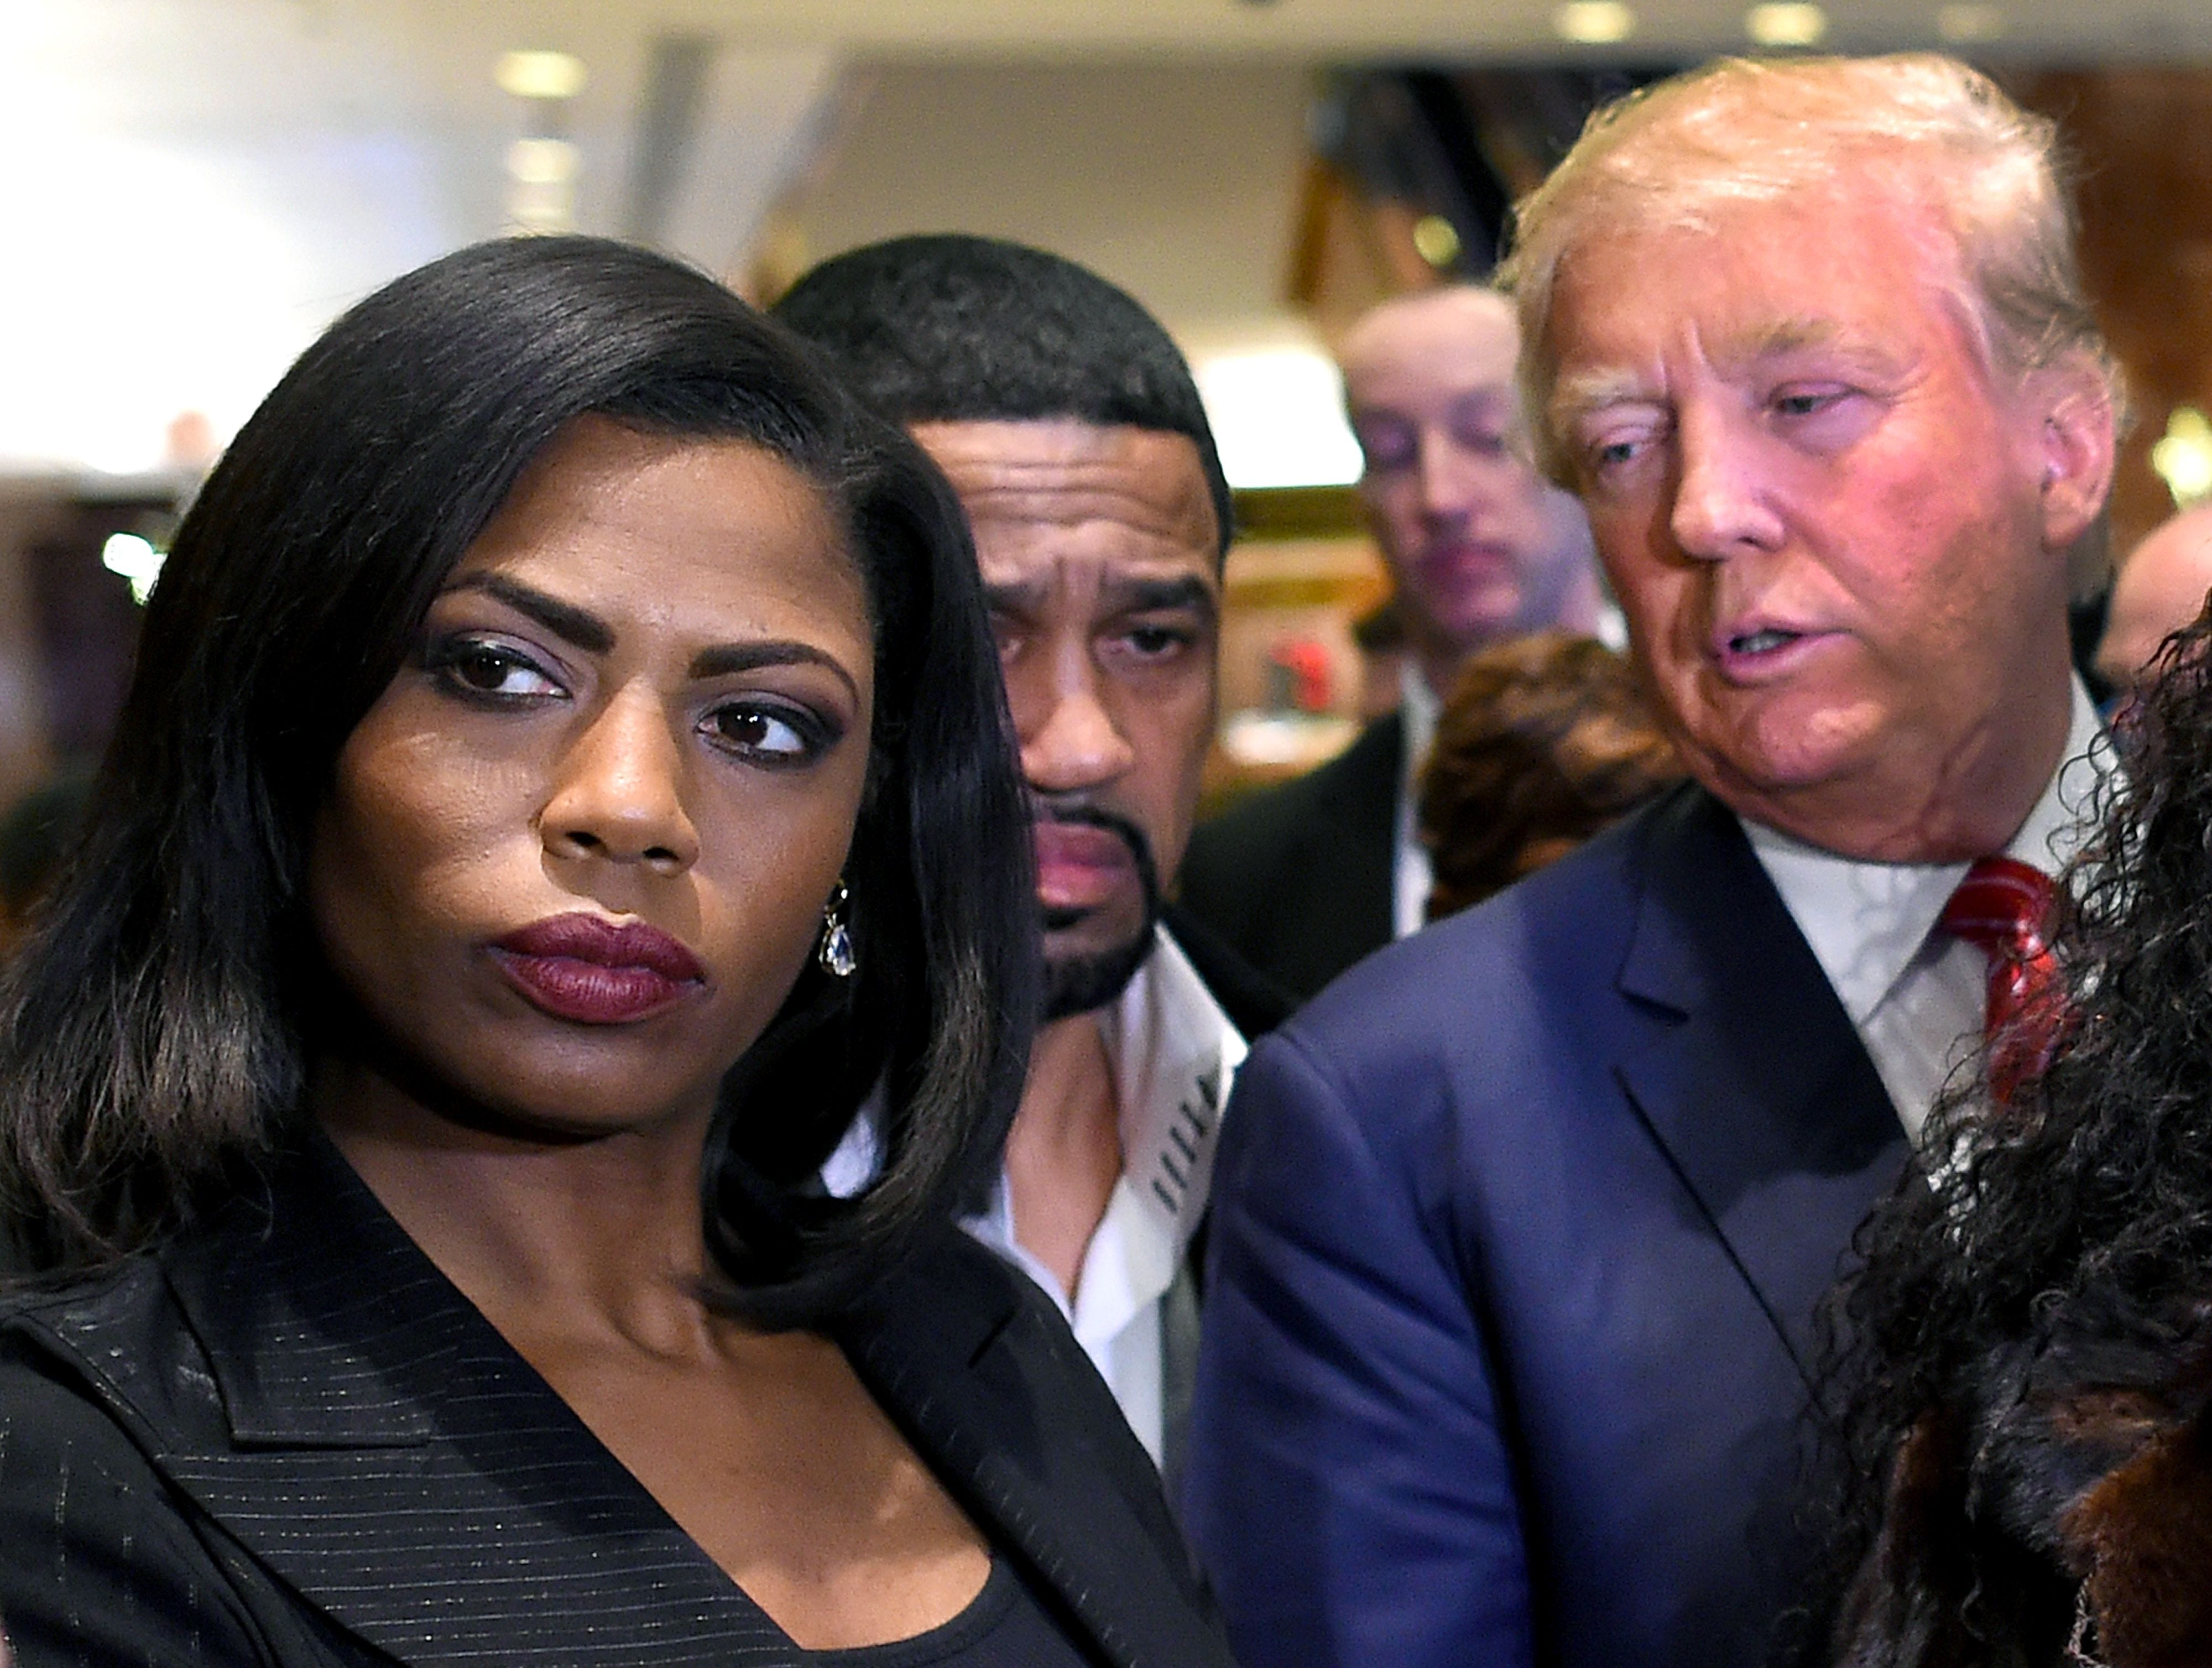 New Omarosa tape has aides talking about Donald Trump possibly using racial slur